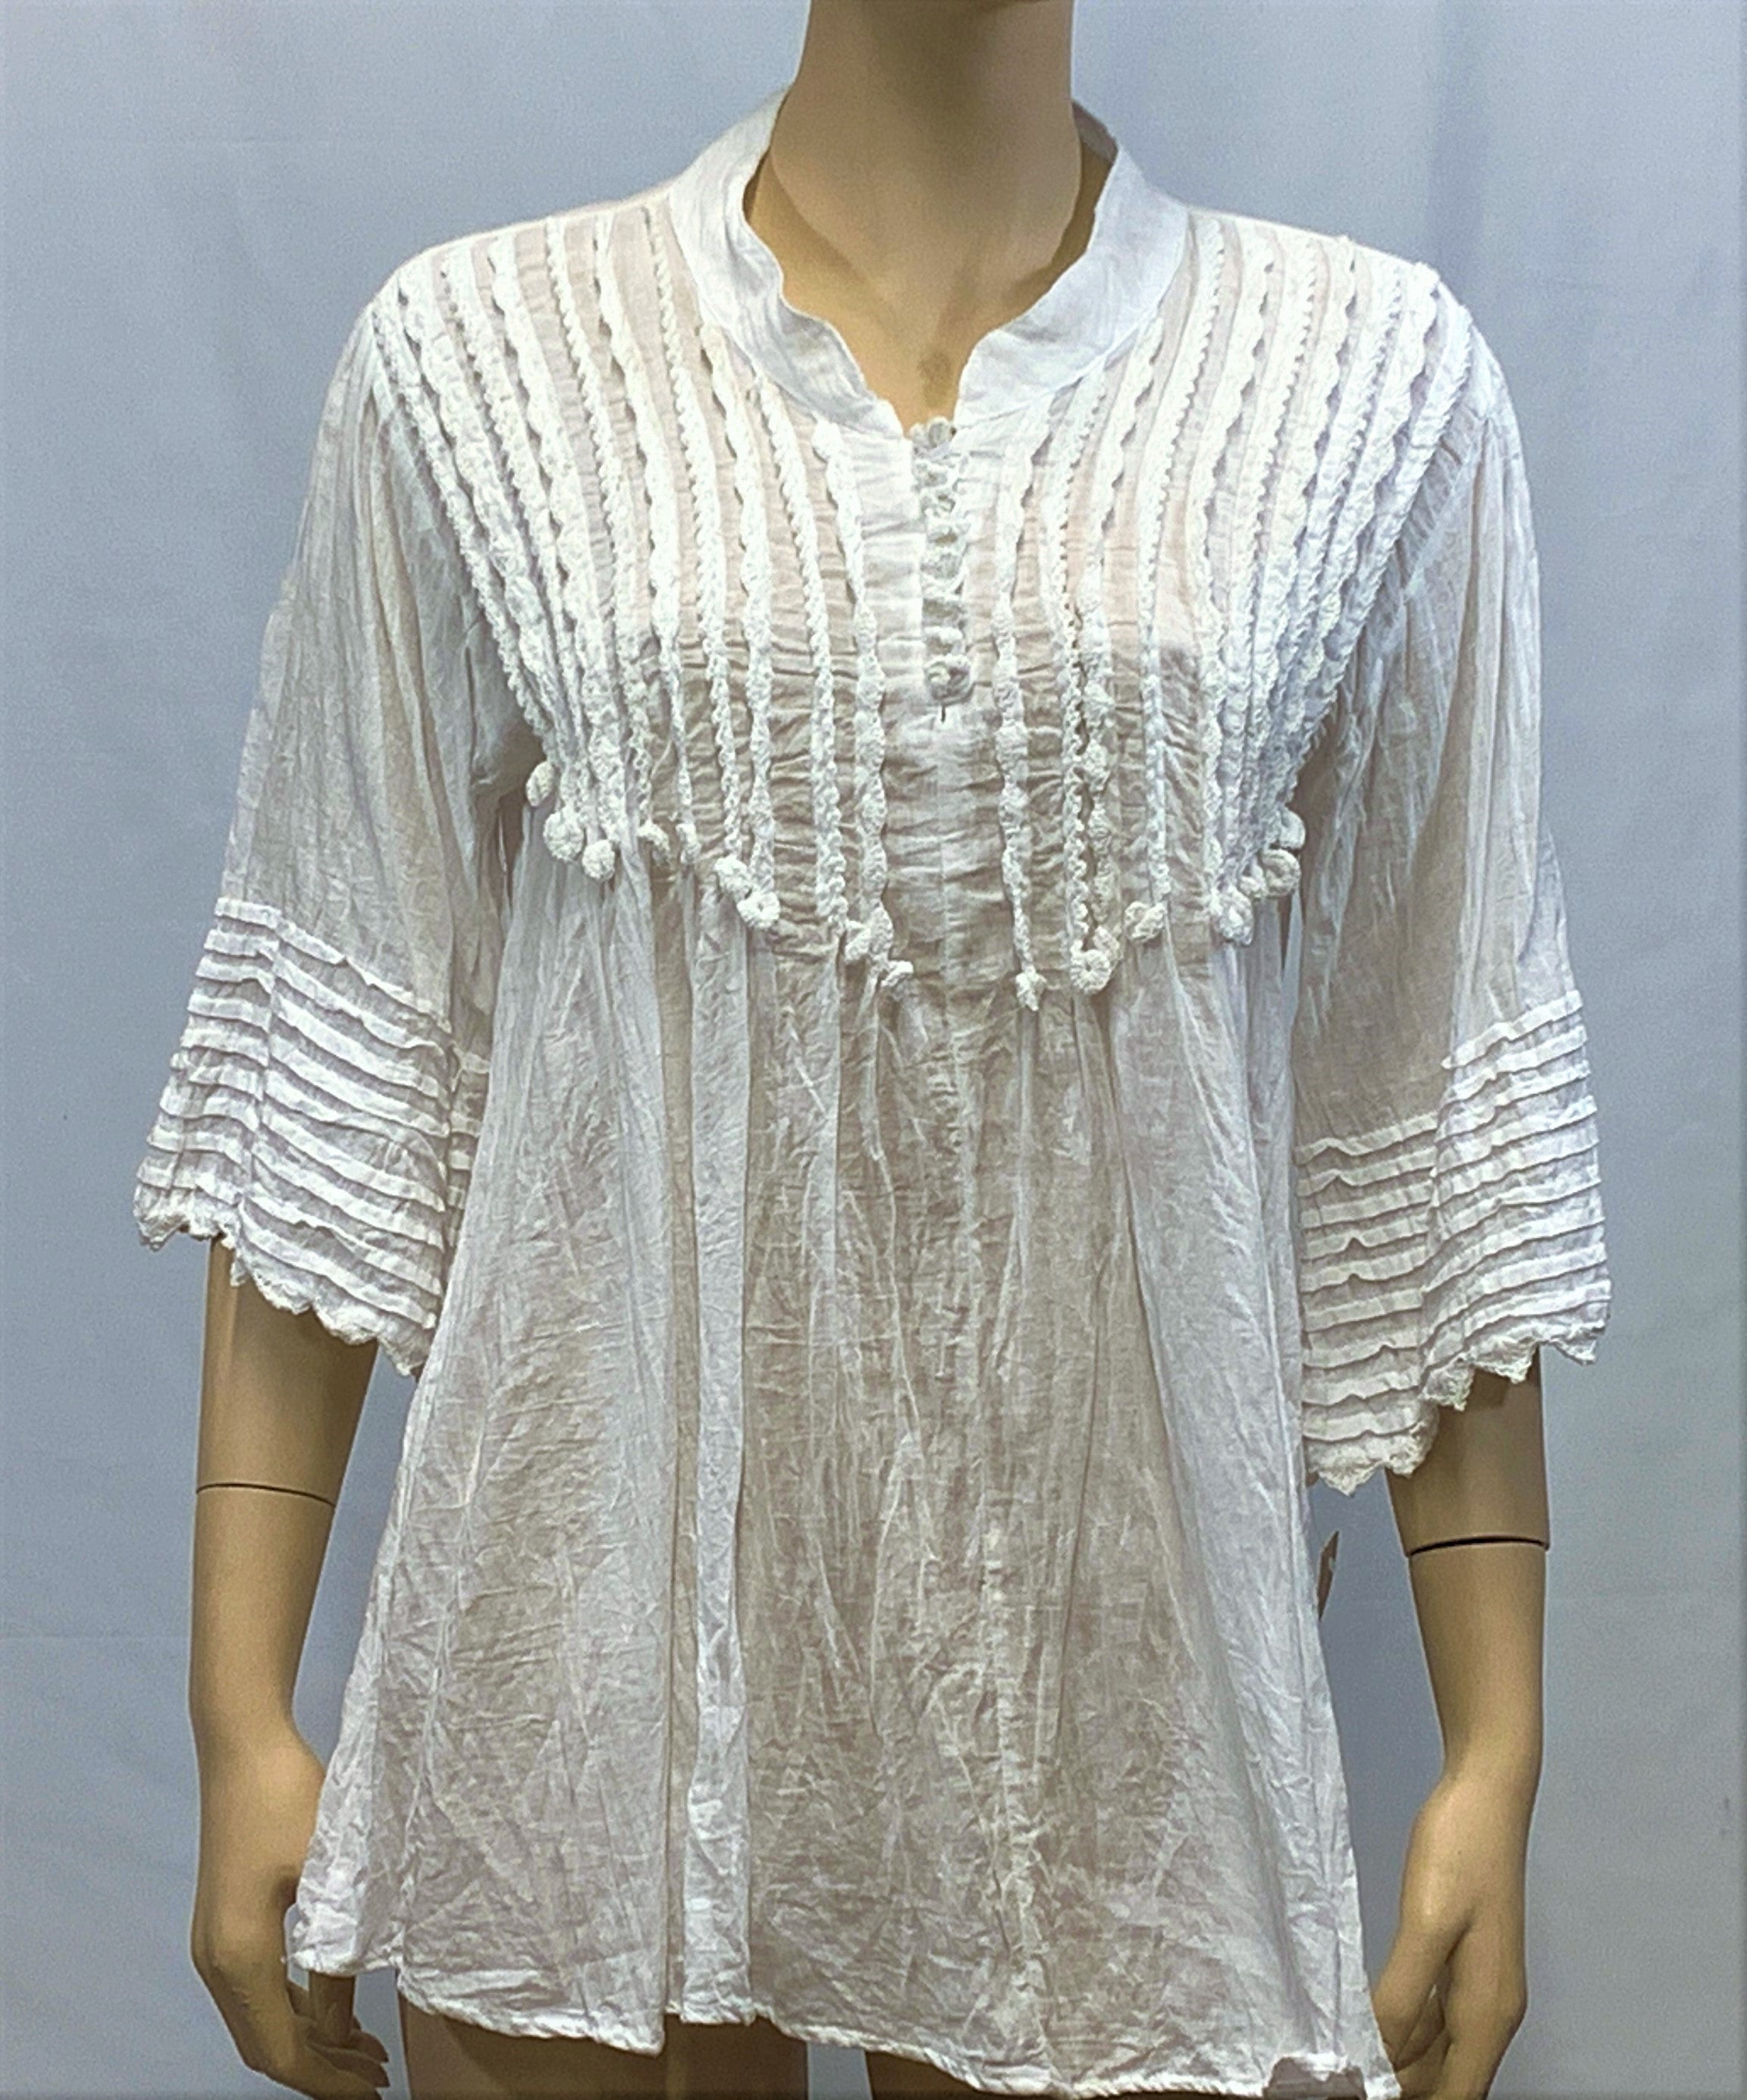 Cotton Lace Ruffle